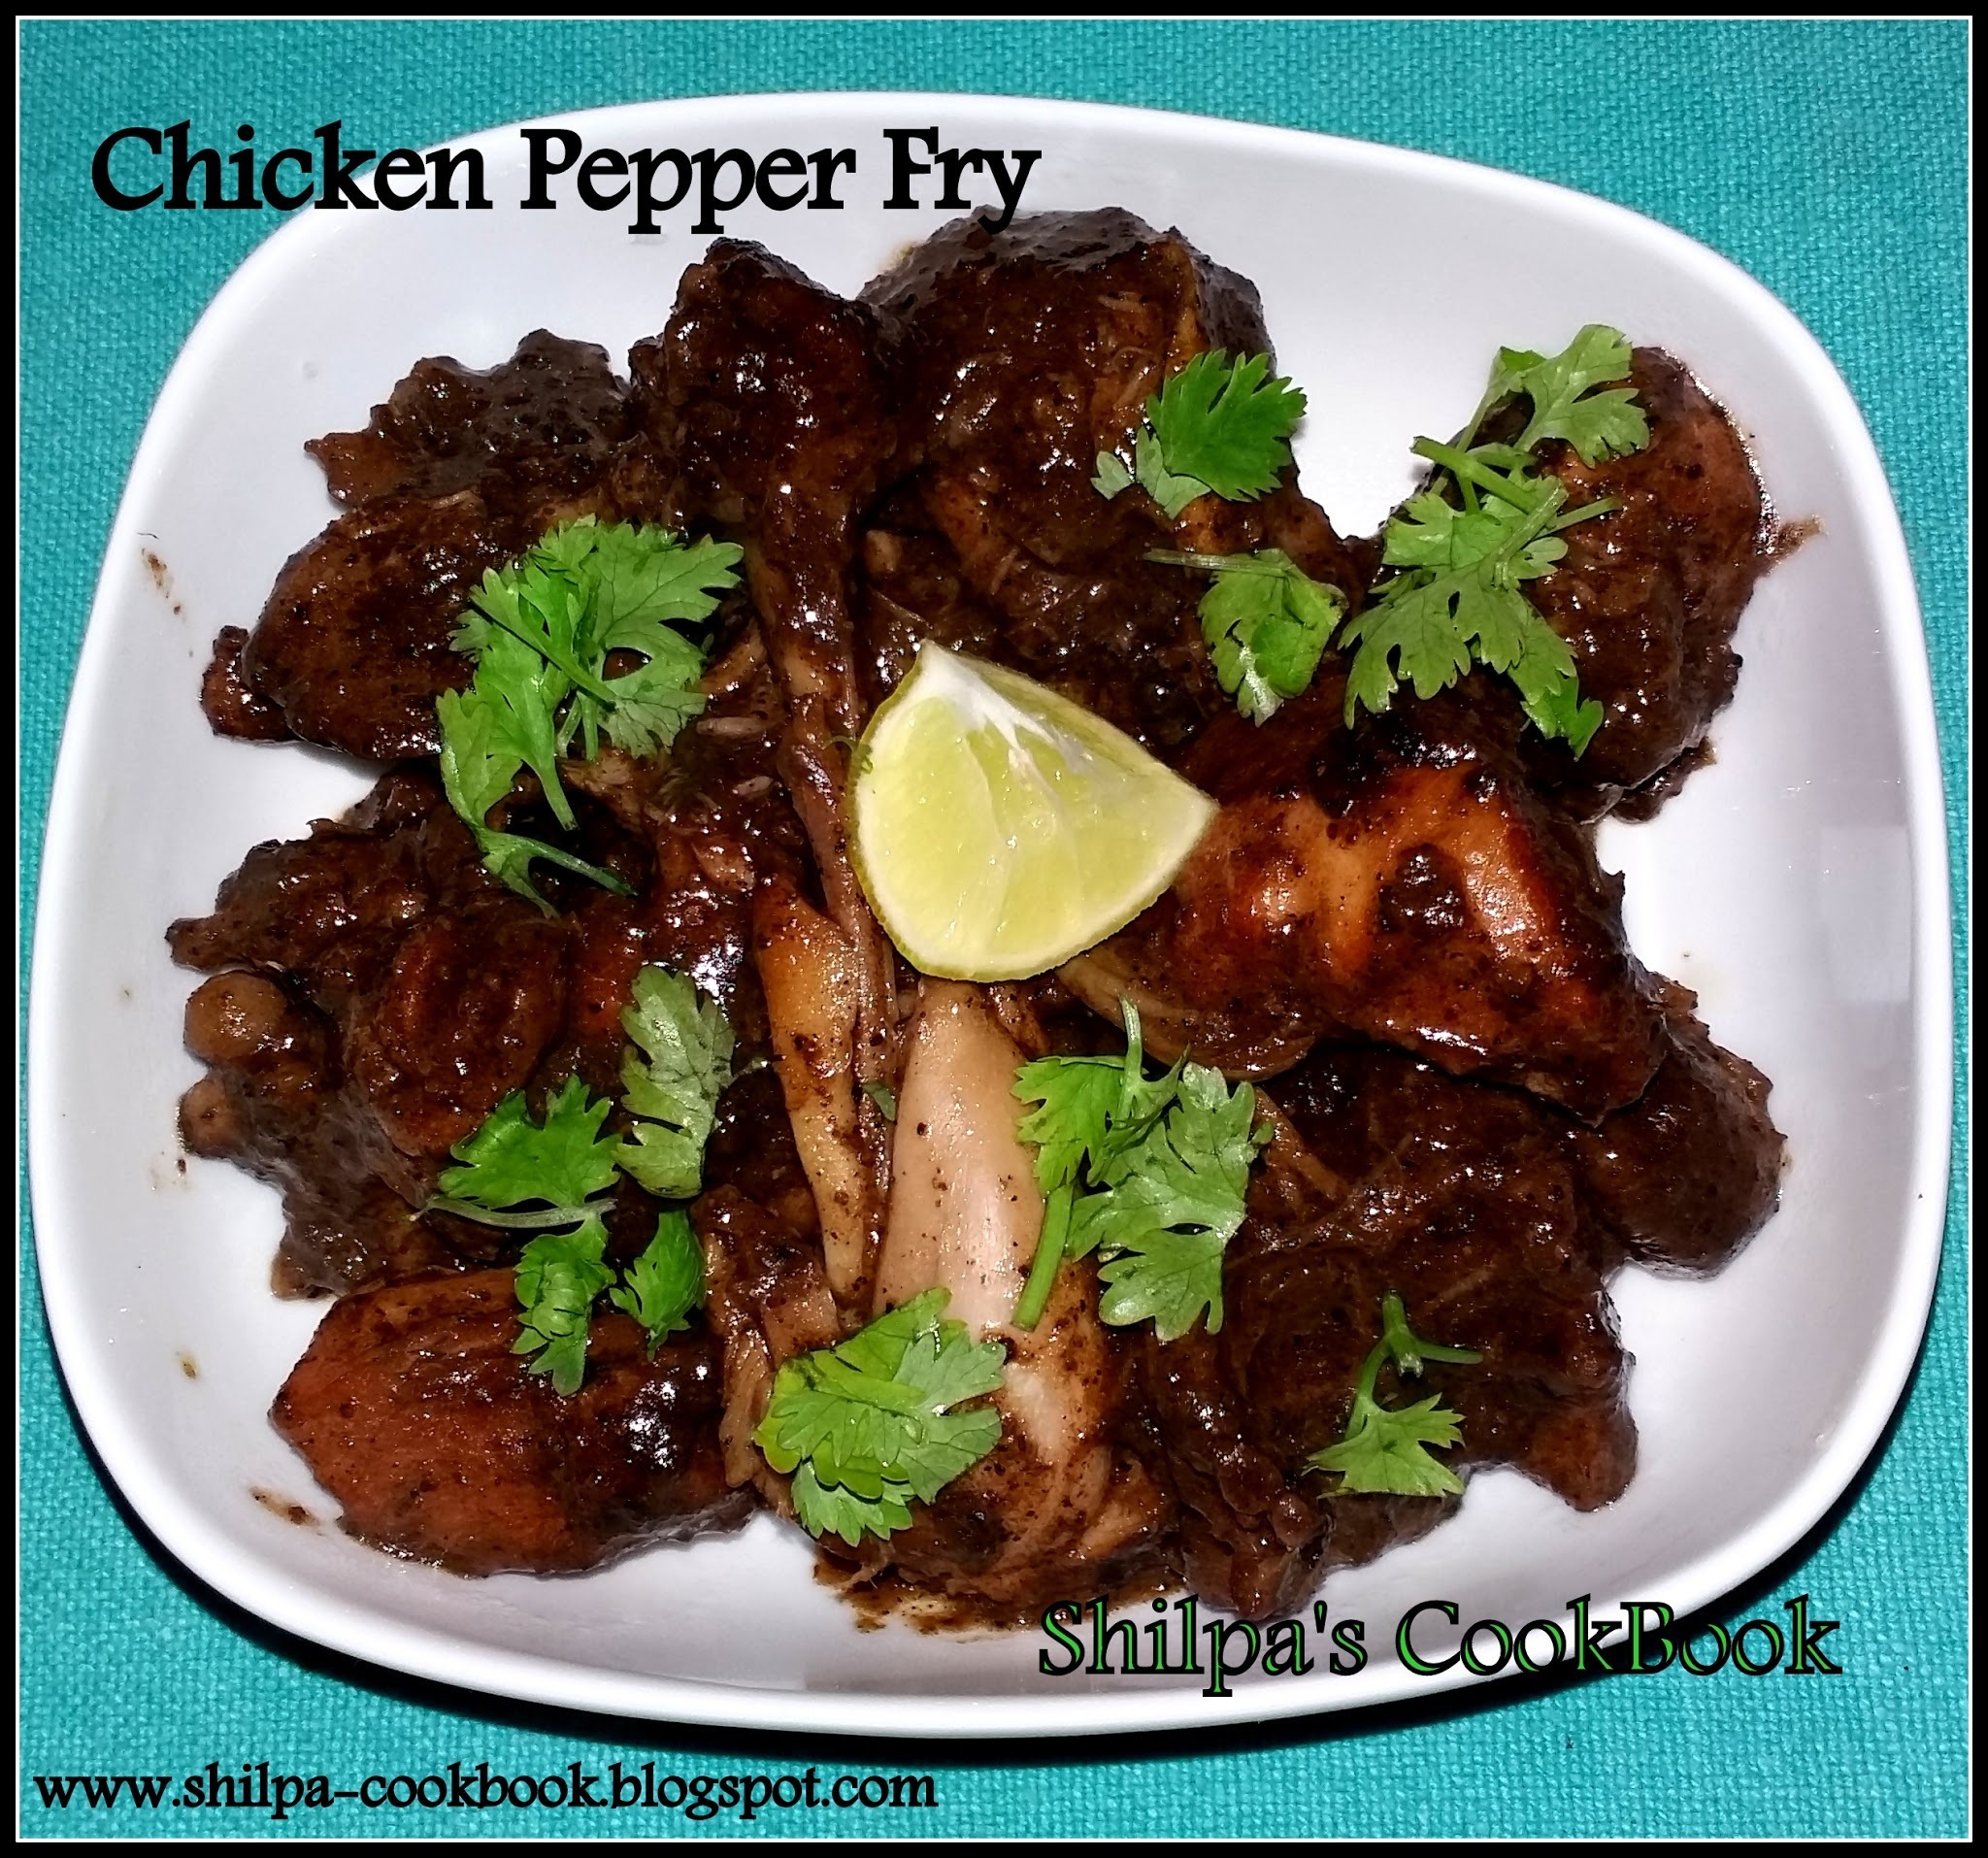 Dish #439 - Chicken Pepper Fry